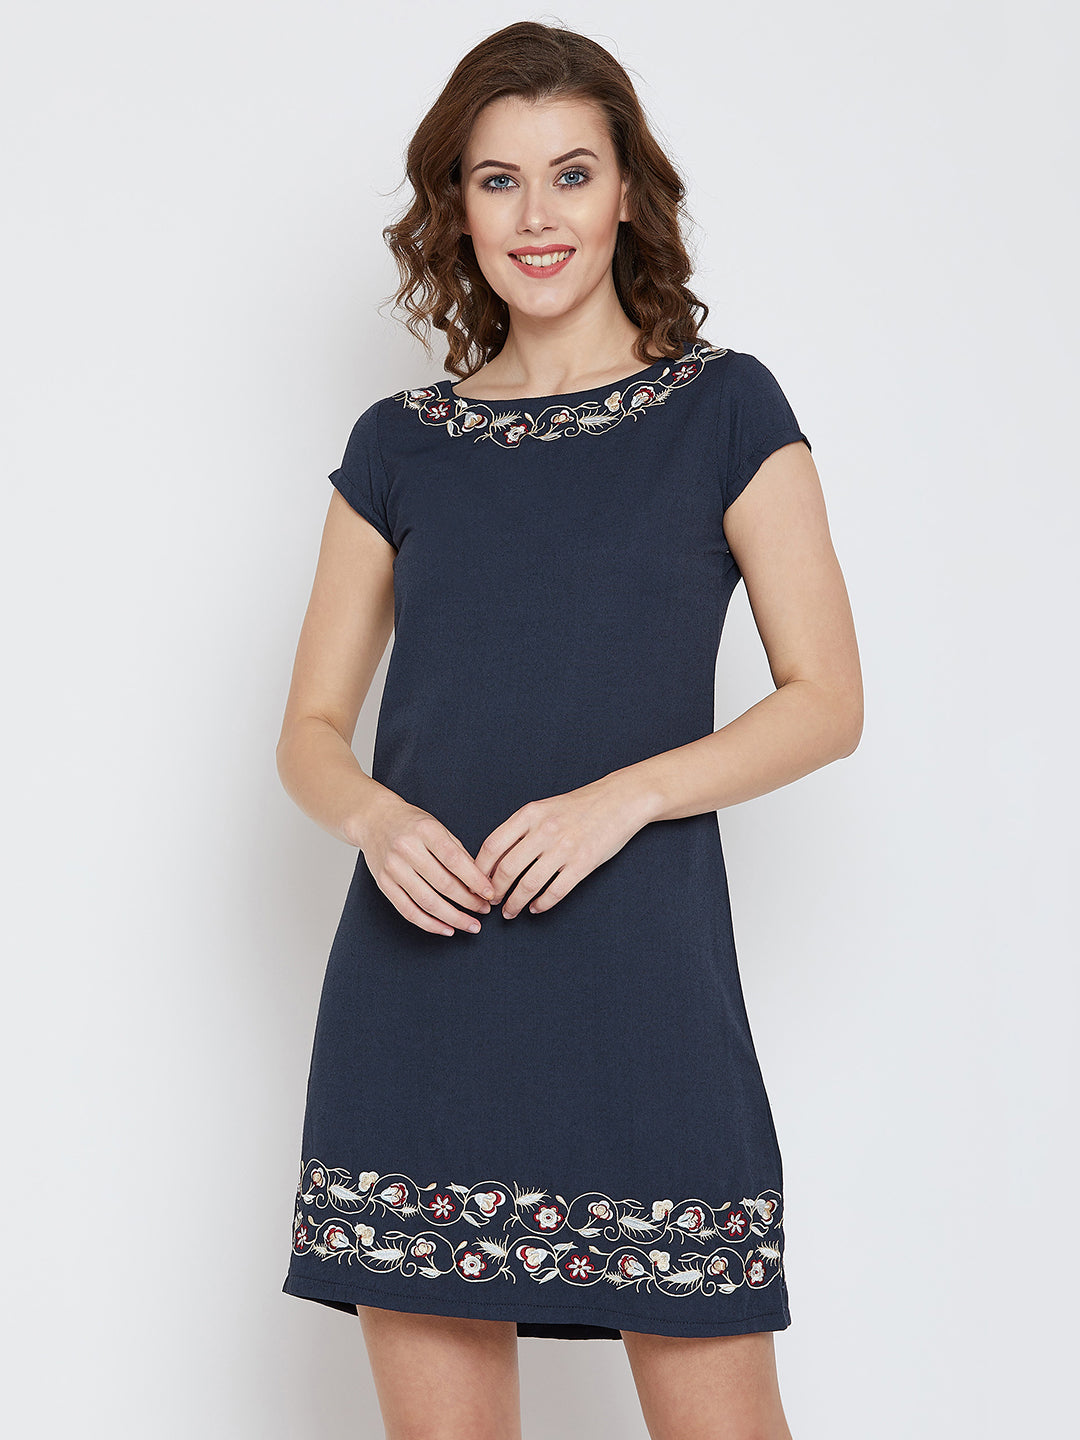 JUMP USA Women Navy Blue Embroidered Sheath Dress - JUMP USA